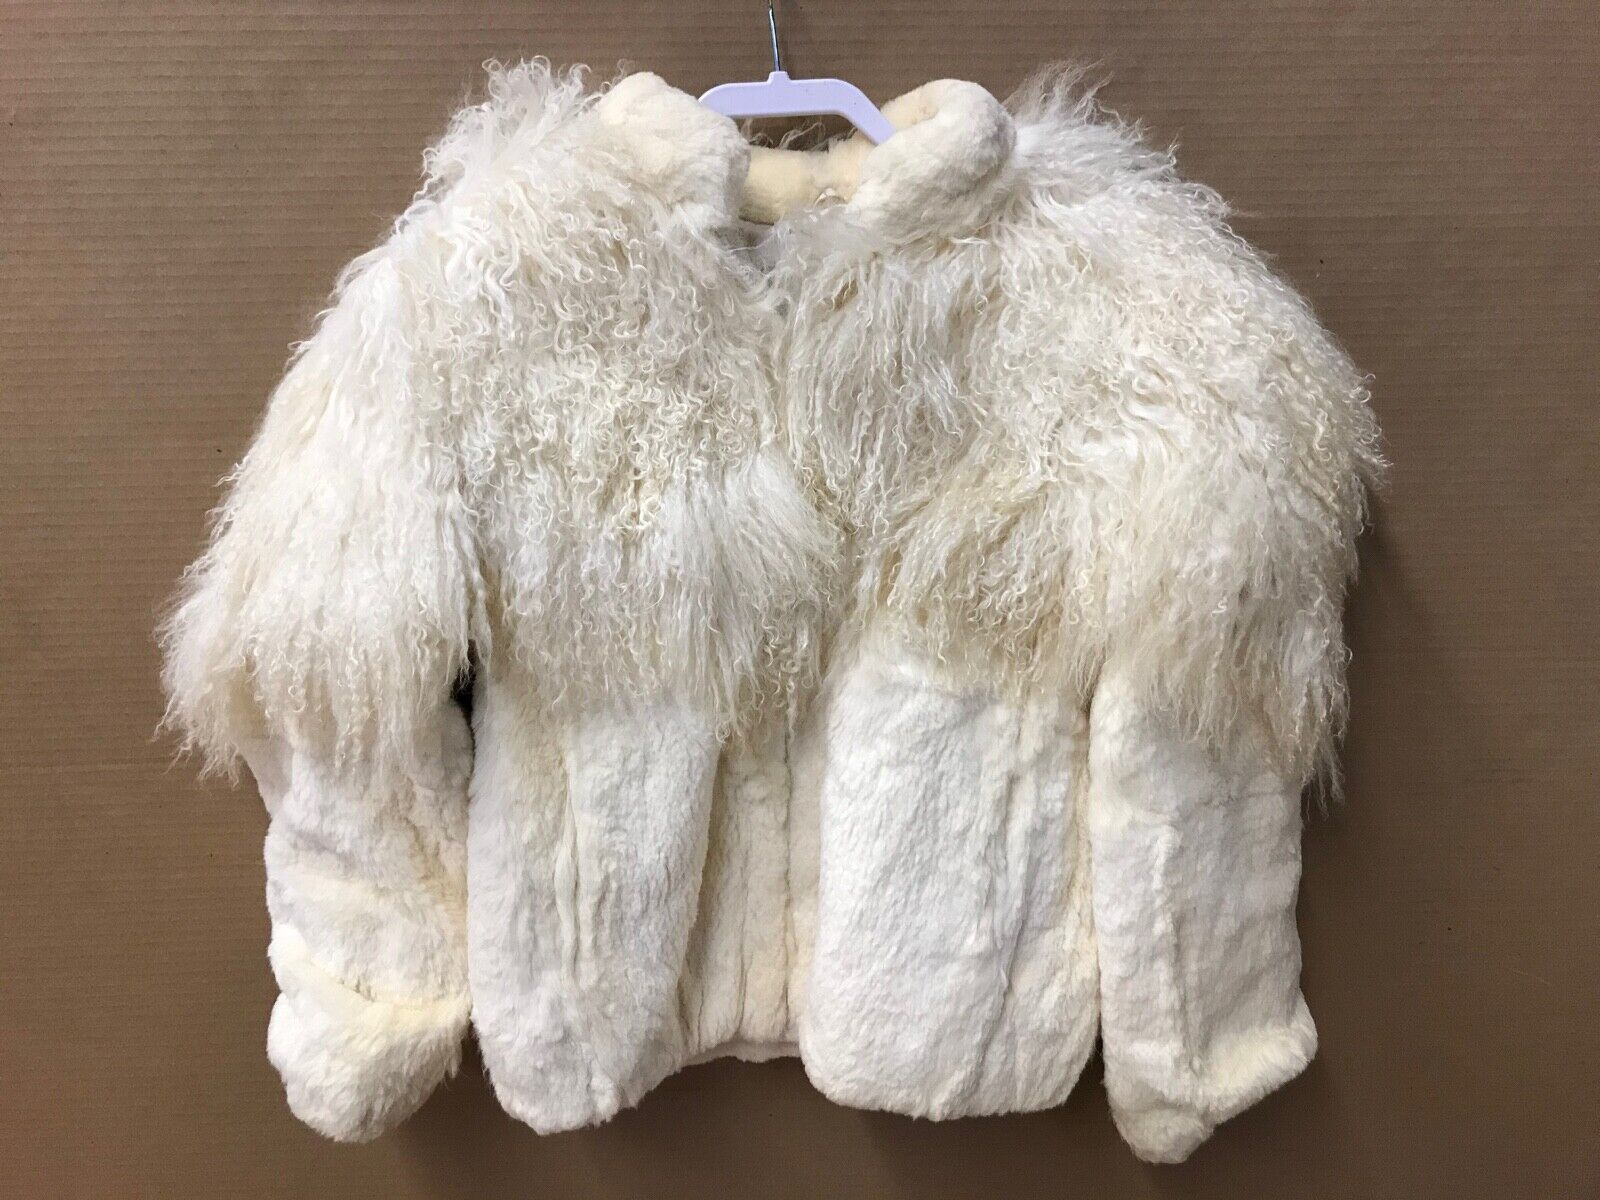 Off White Real Fur Coat - Size L - $99.00